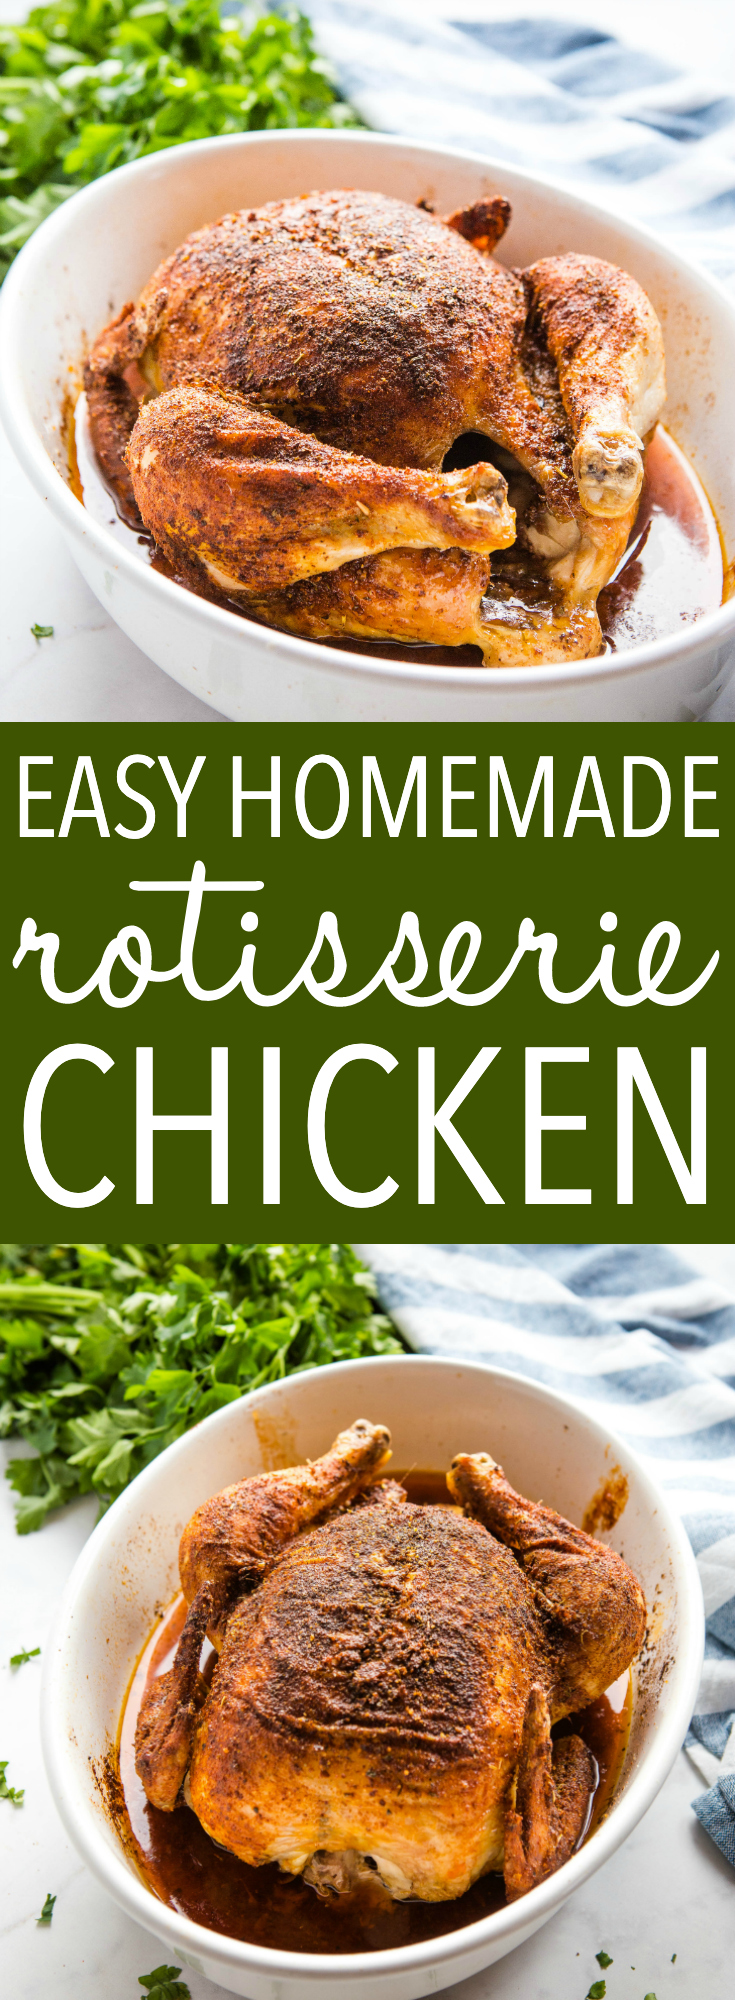 This Easy Homemade Rotisserie Chicken is the perfect simple alternative to supermarket rotisserie chicken with crispy skin and juicy meat - make it in under an hour with just a few pantry ingredients and use it in all your favourite chicken recipes, OR enjoy it as a delicious main dish! Recipe from thebusybaker.ca! #rotisseriechicken #easychickenrecipe #chicken #homemade #spices #pantryrecipe #homemade #familymeal #roastchicken via @busybakerblog